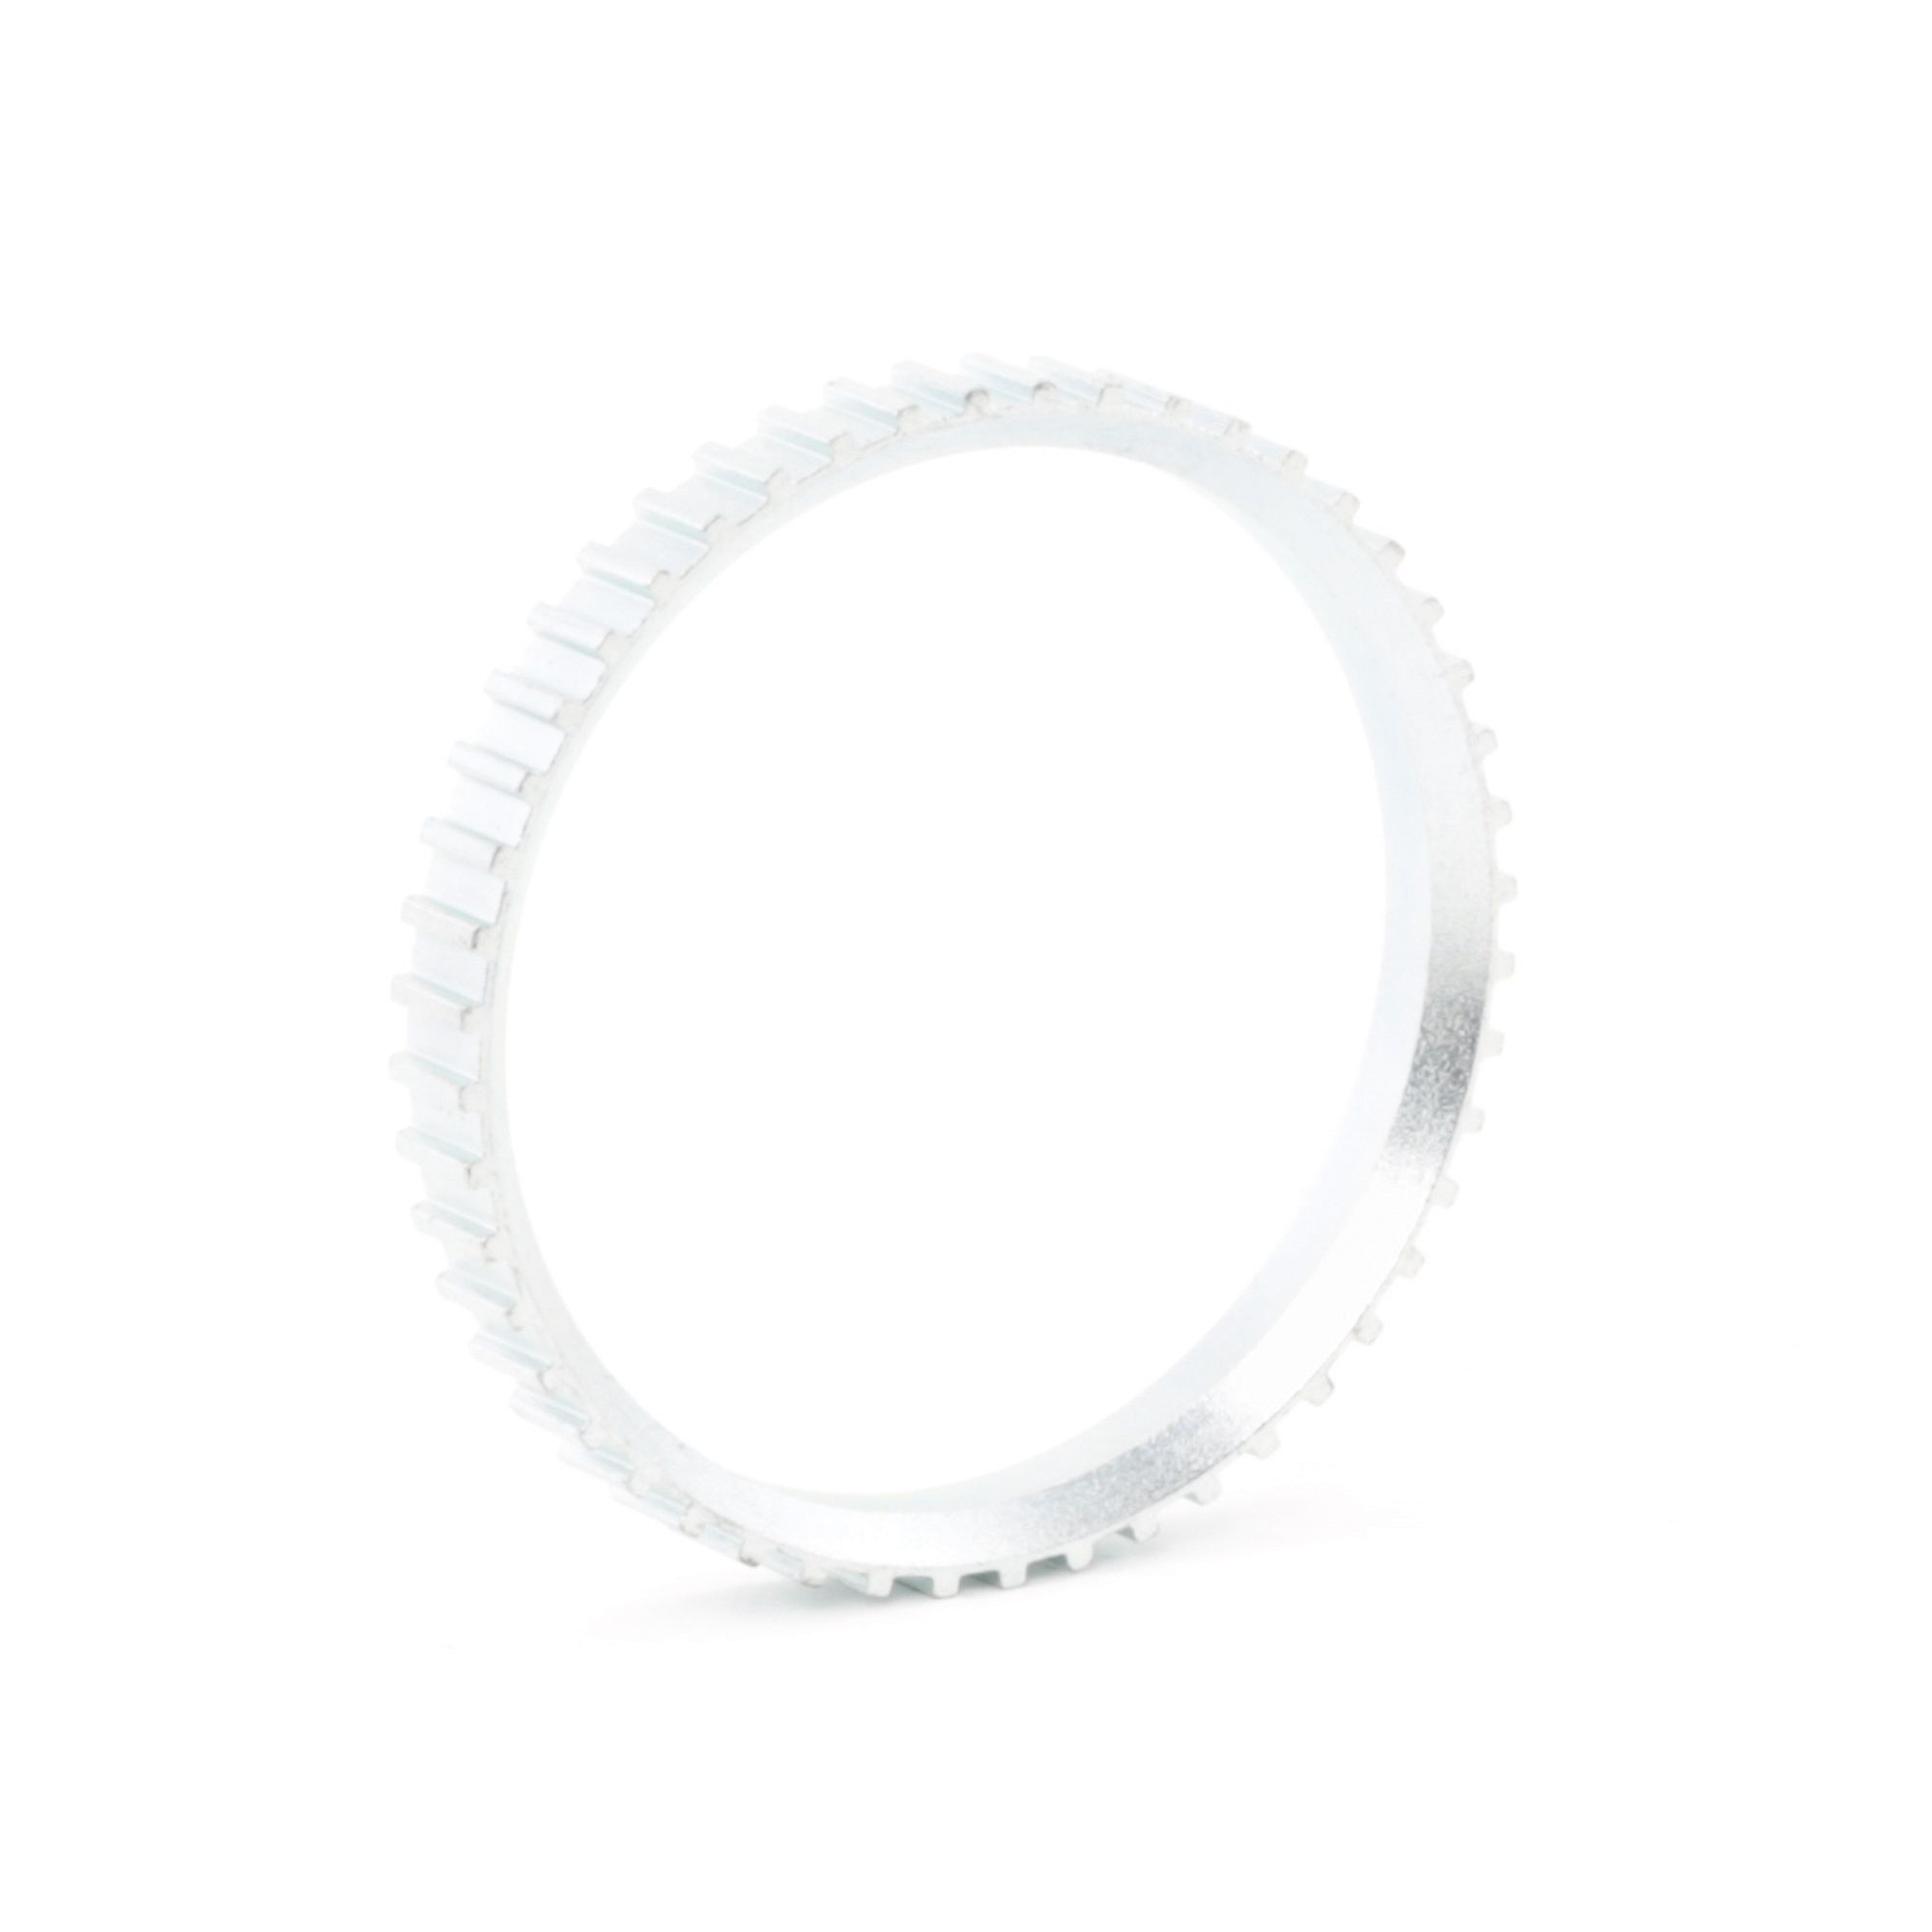 Reluctor Ring RIDEX 2254S0036 rating